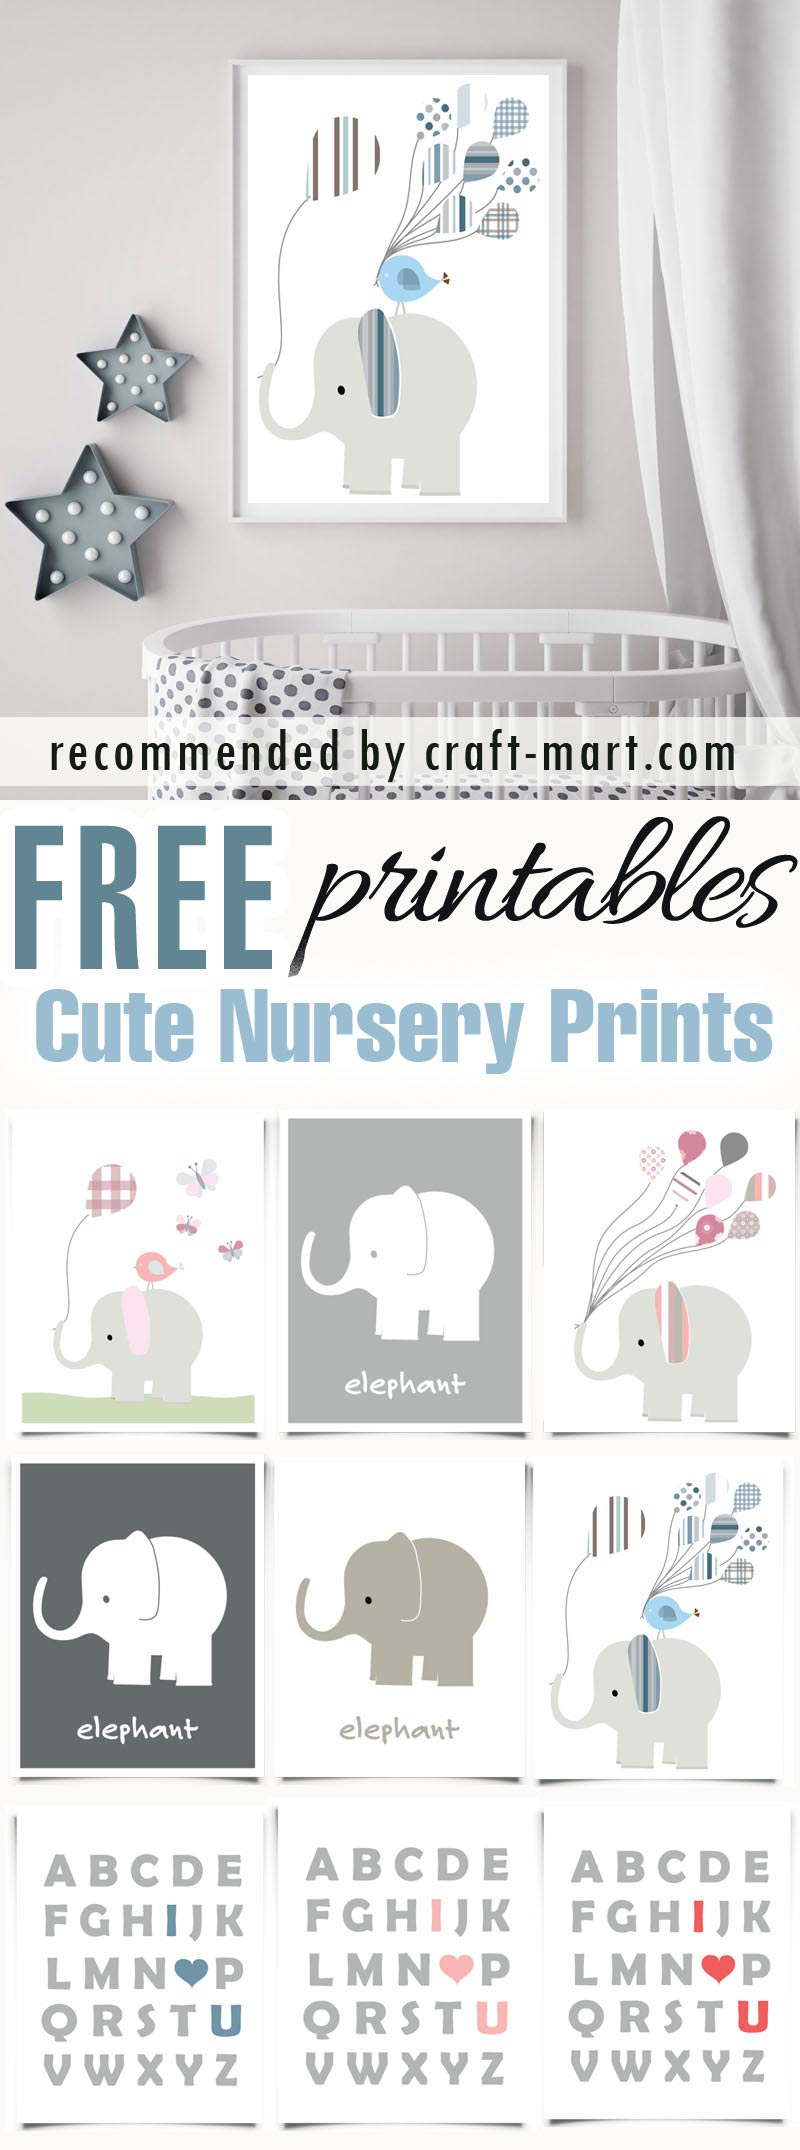 Cute Nursery Prints - Elephants and 'I Love You' ABC (11 free printables) #freeprintables #freenurseryprintables #freenurserywallart #cutenurseryprints #animalsnurseryprintables #elephantnurseryprintables #freenurseryprints #ILoveYouNurseryPrintables